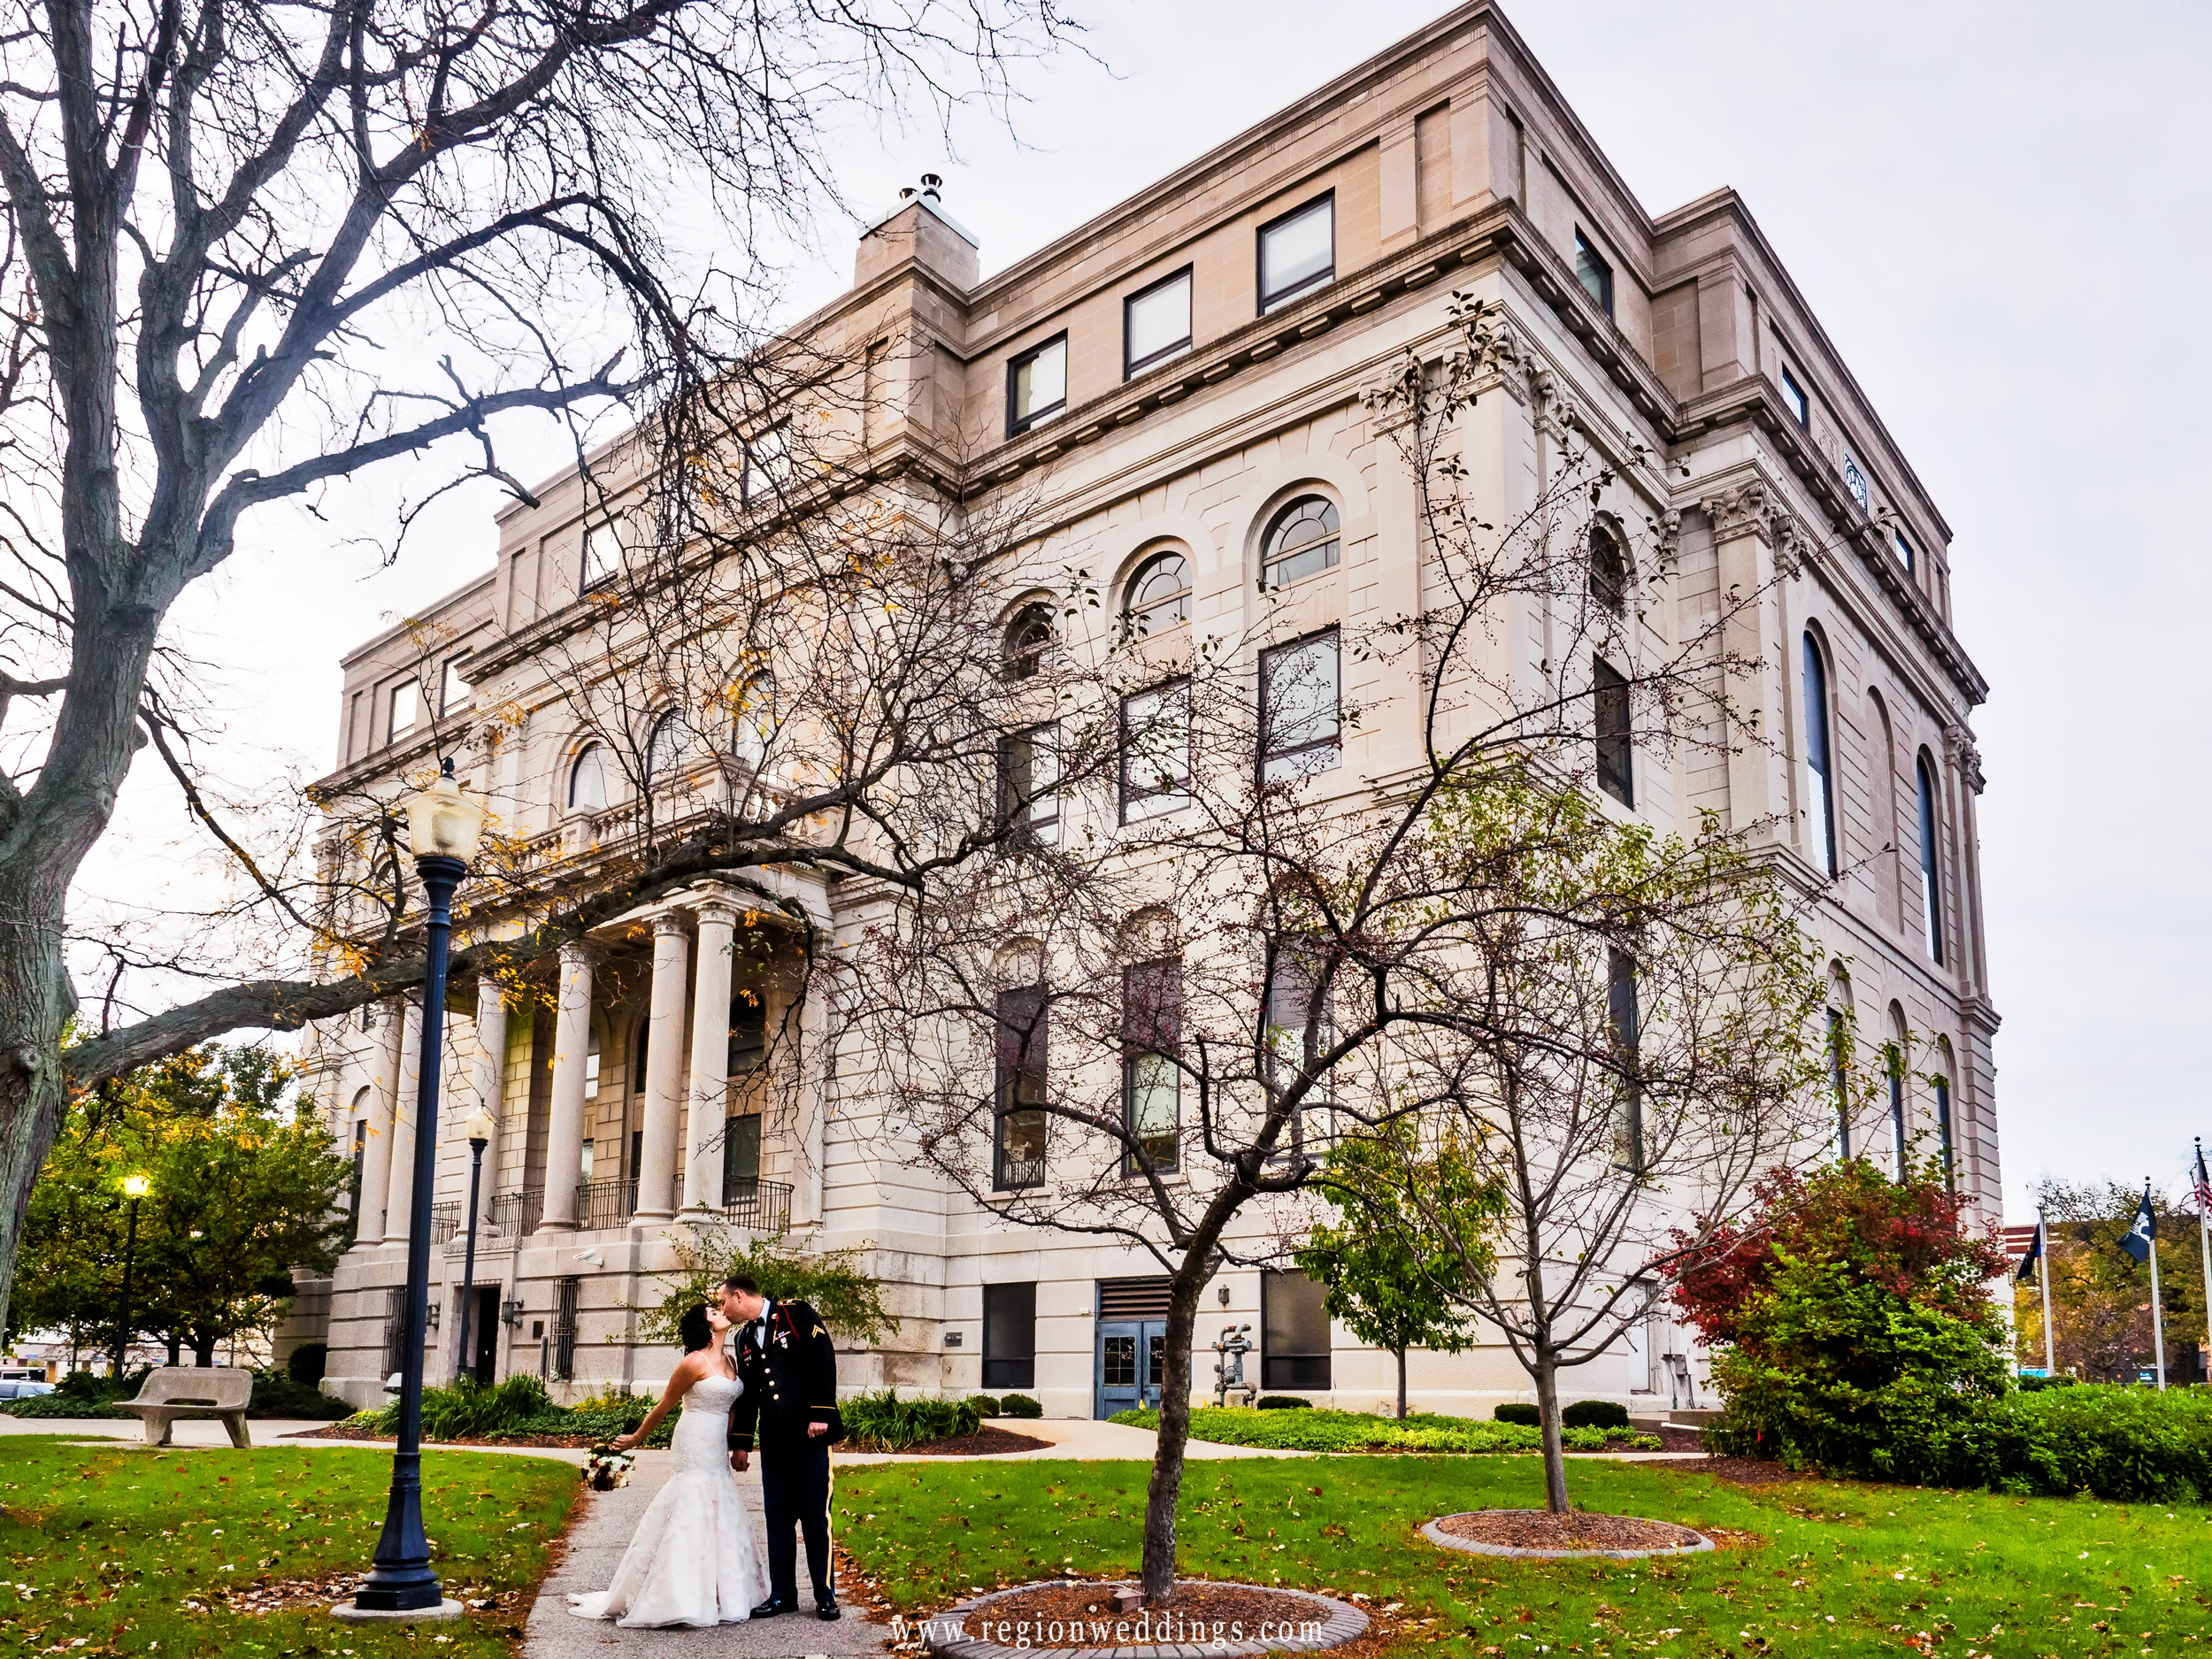 Bride and groom share a kiss outside the Porter County Courthouse in Valparaiso, Indiana.